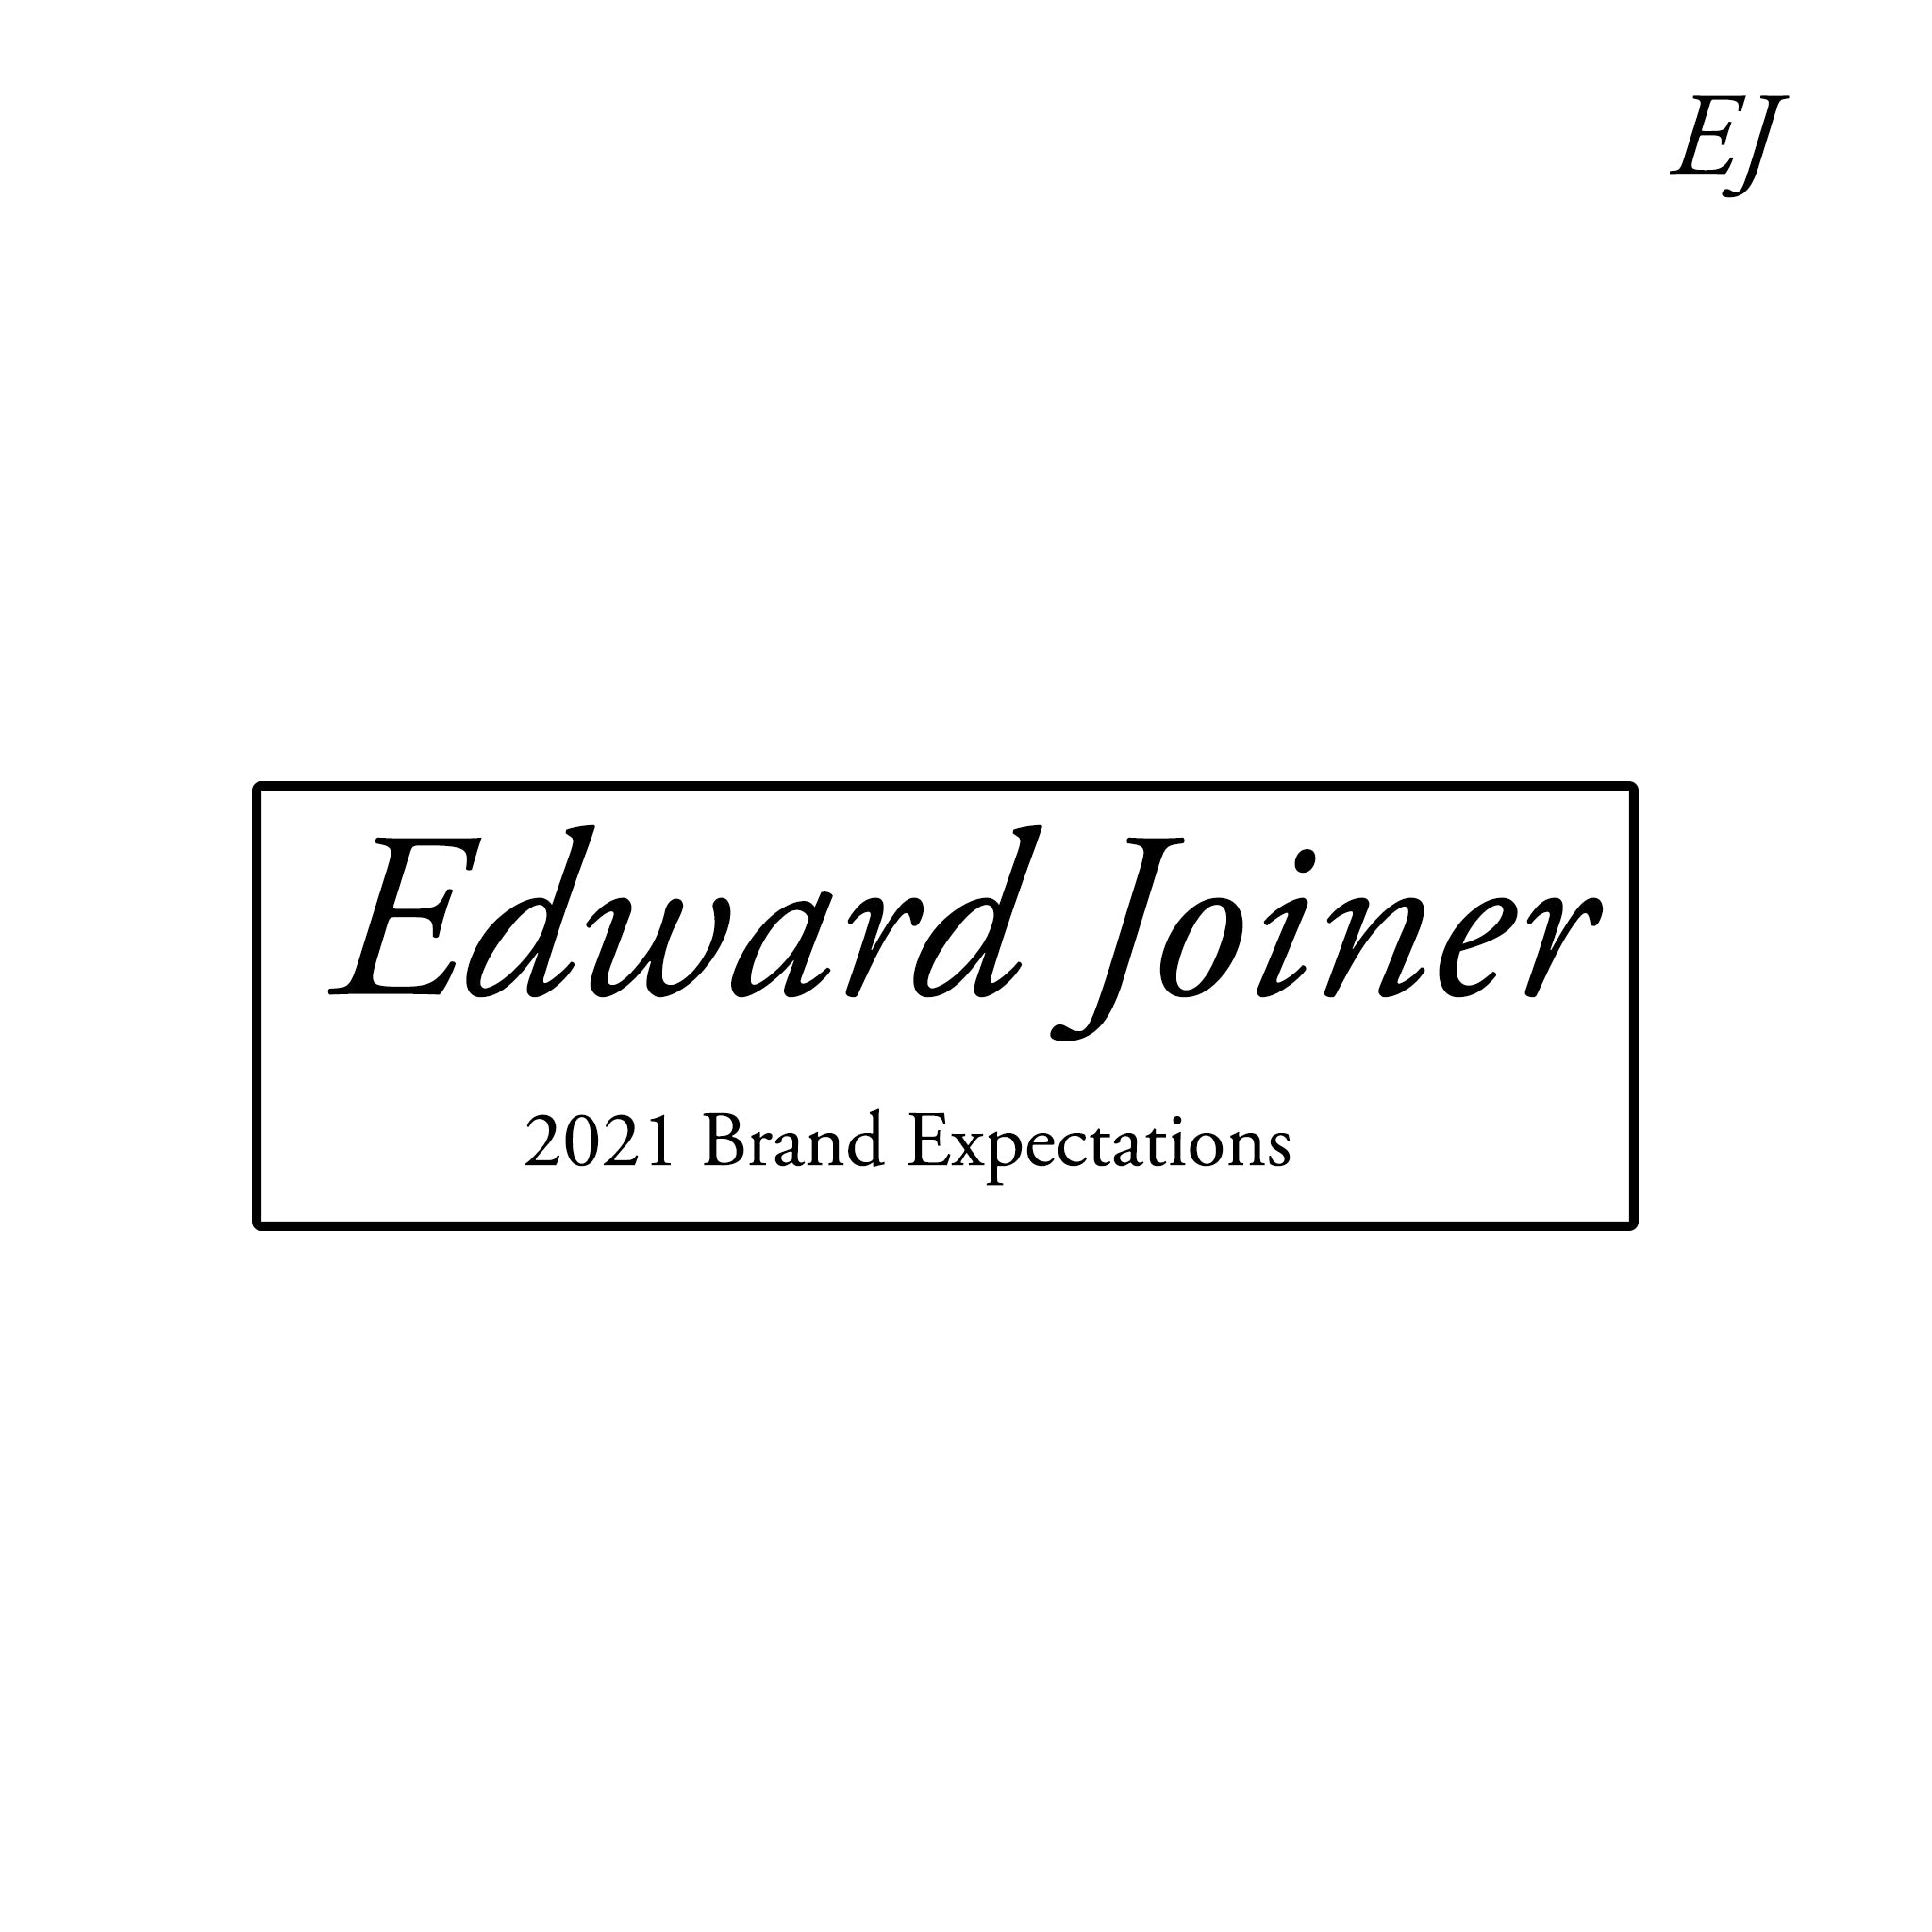 Edward Joiner 2021 Brand Expectations